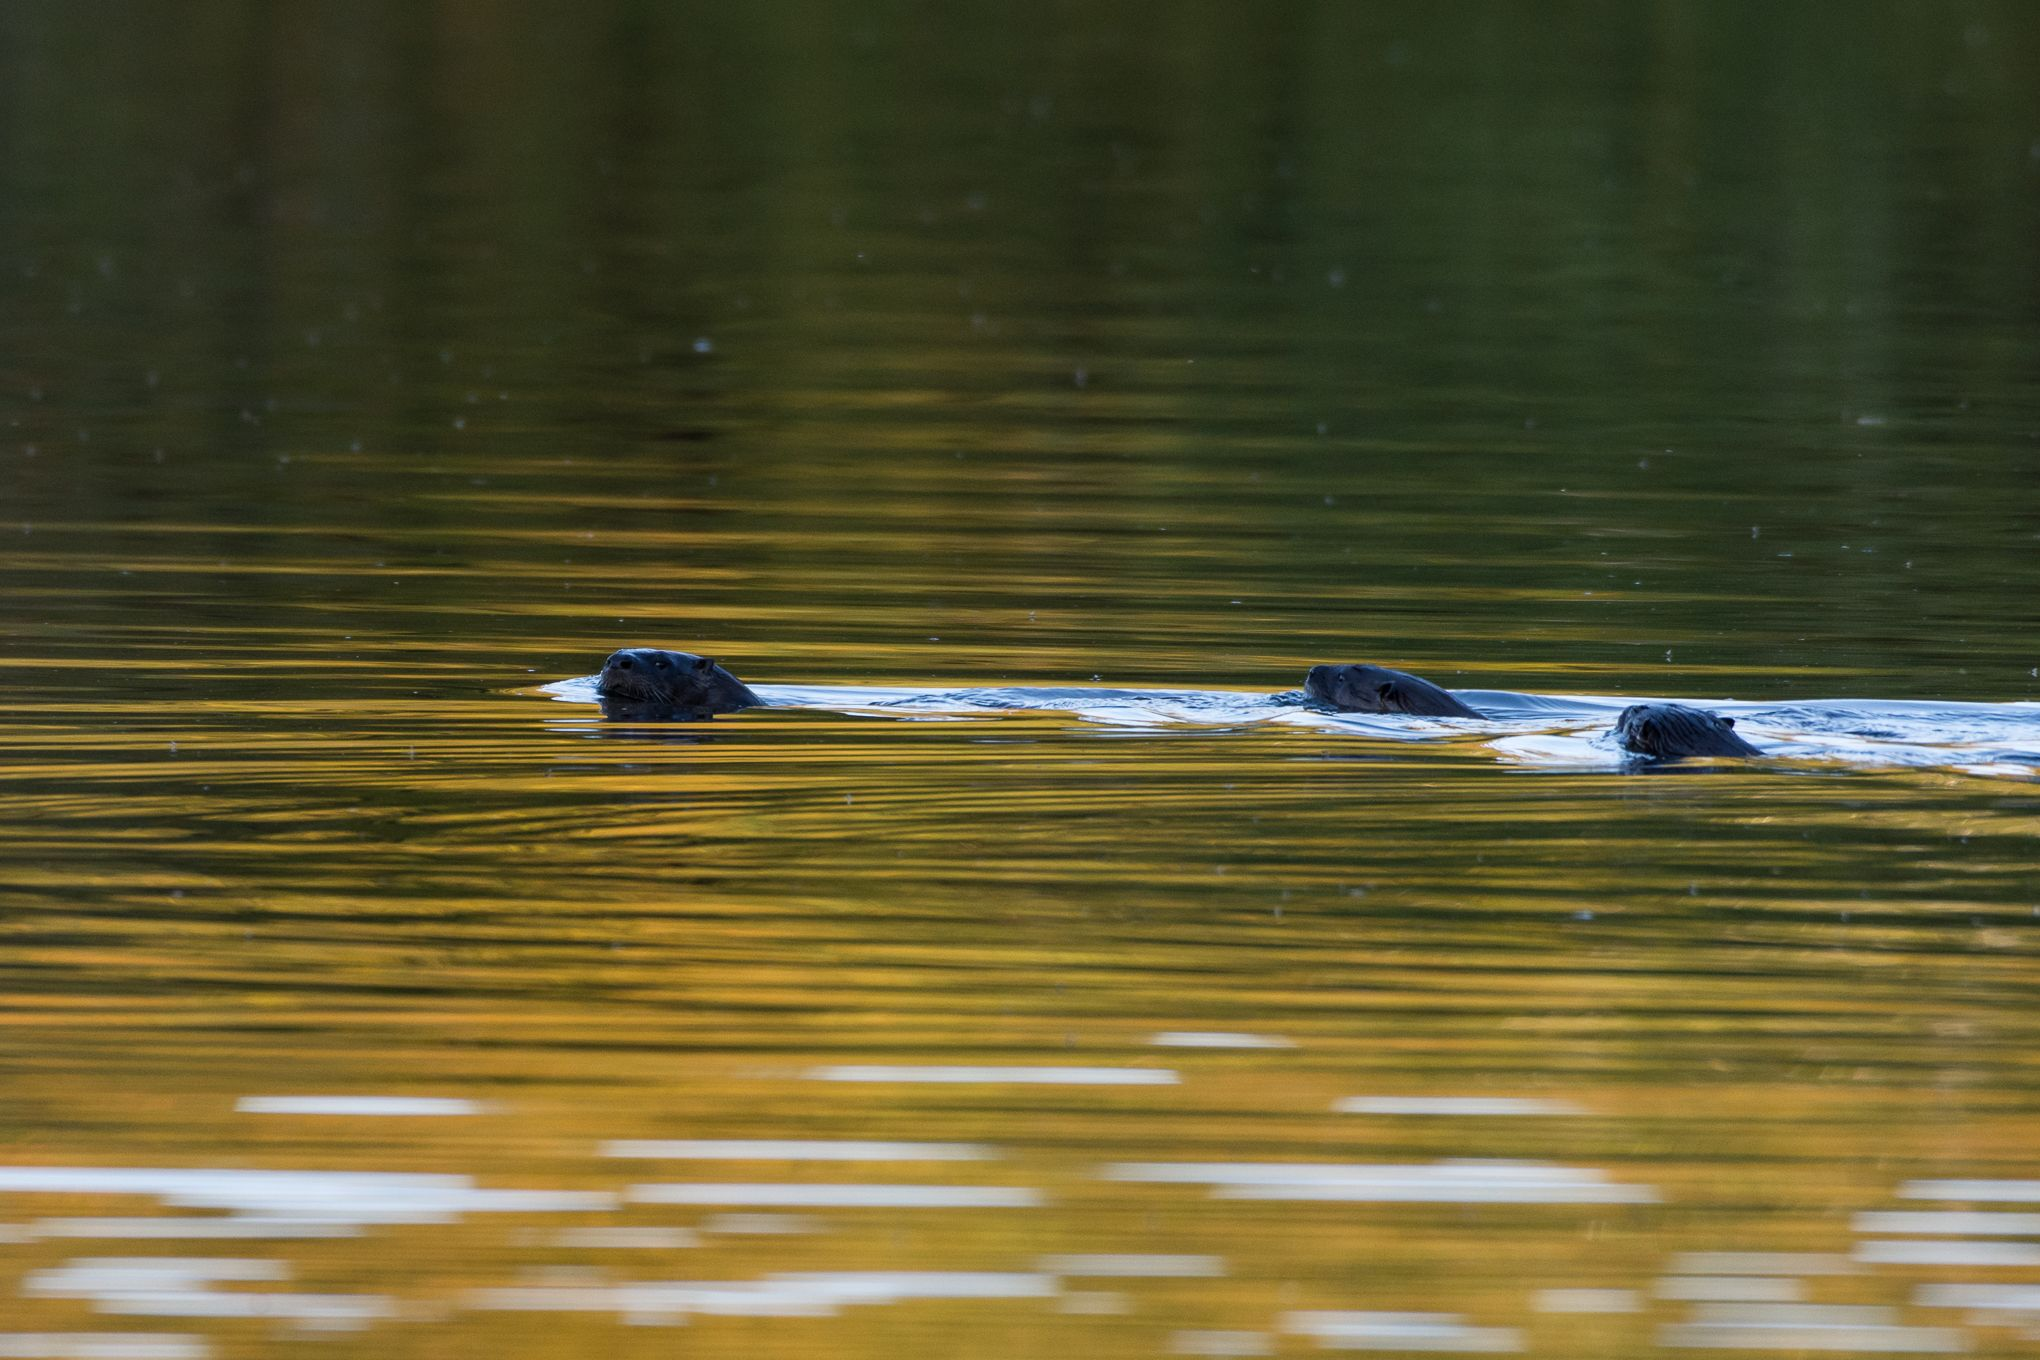 Three river otters swim in a pond in golden sunlight.